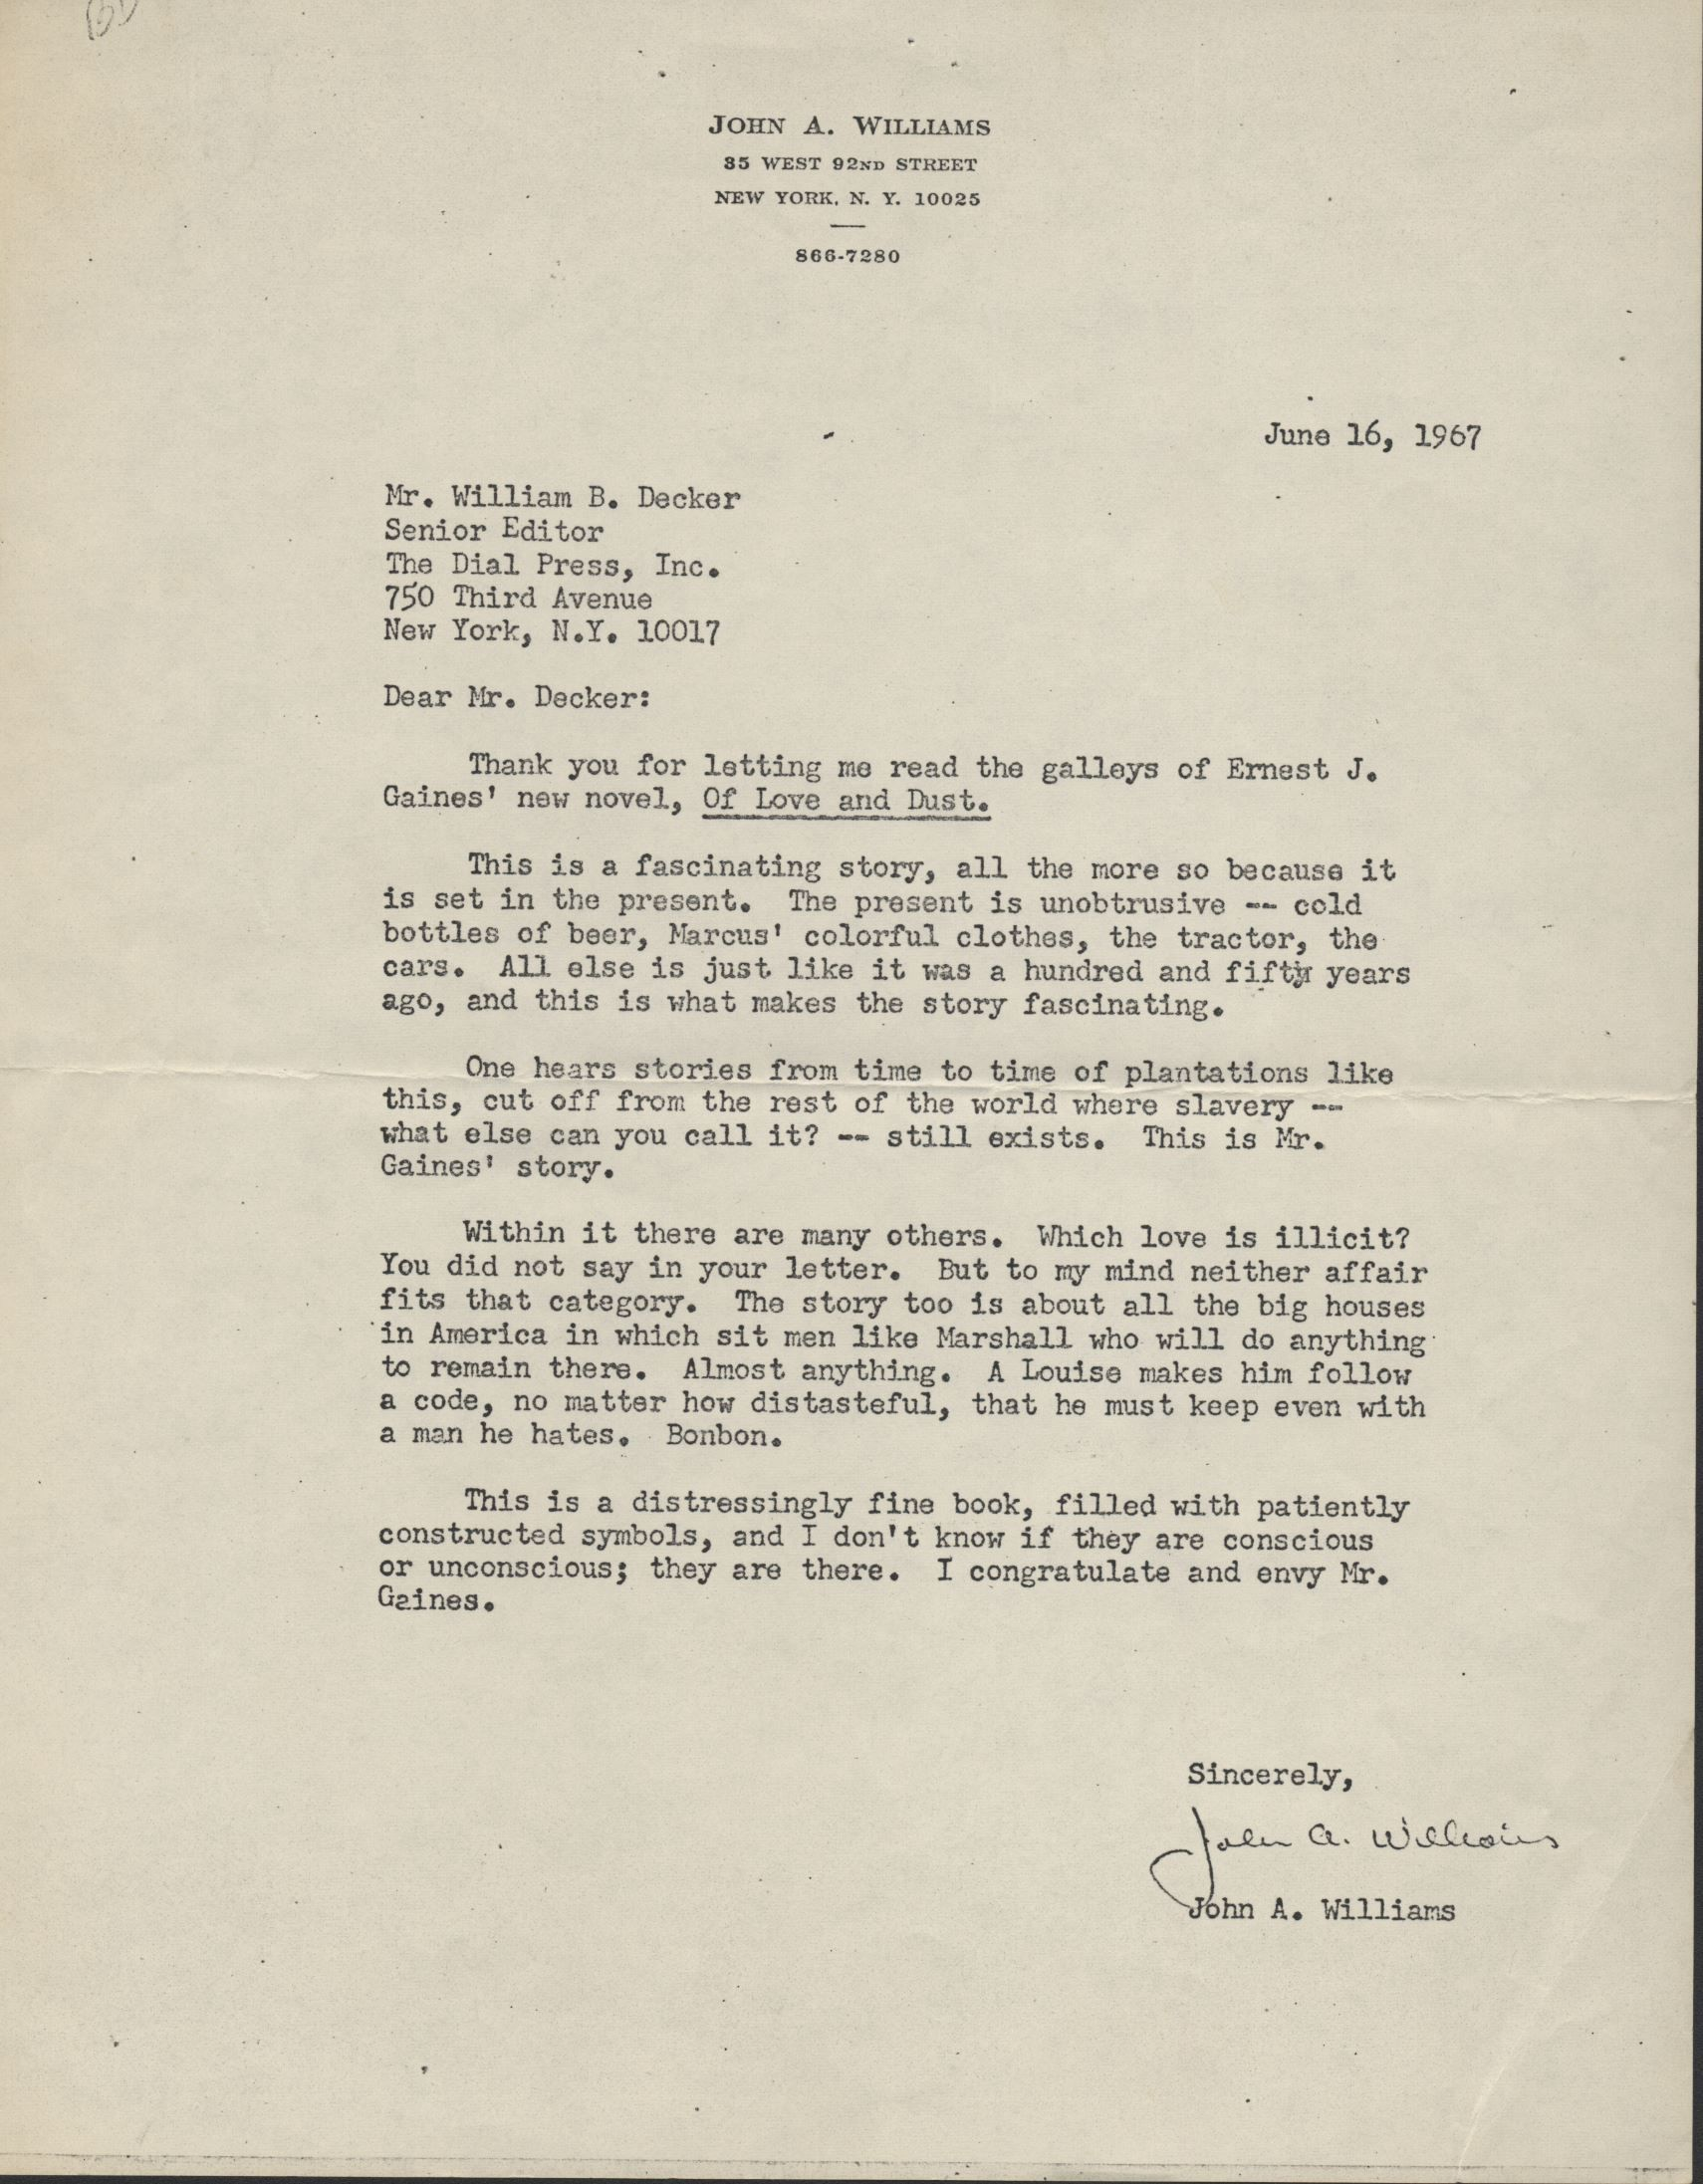 John A. Williams' letter on Of Love and Dust